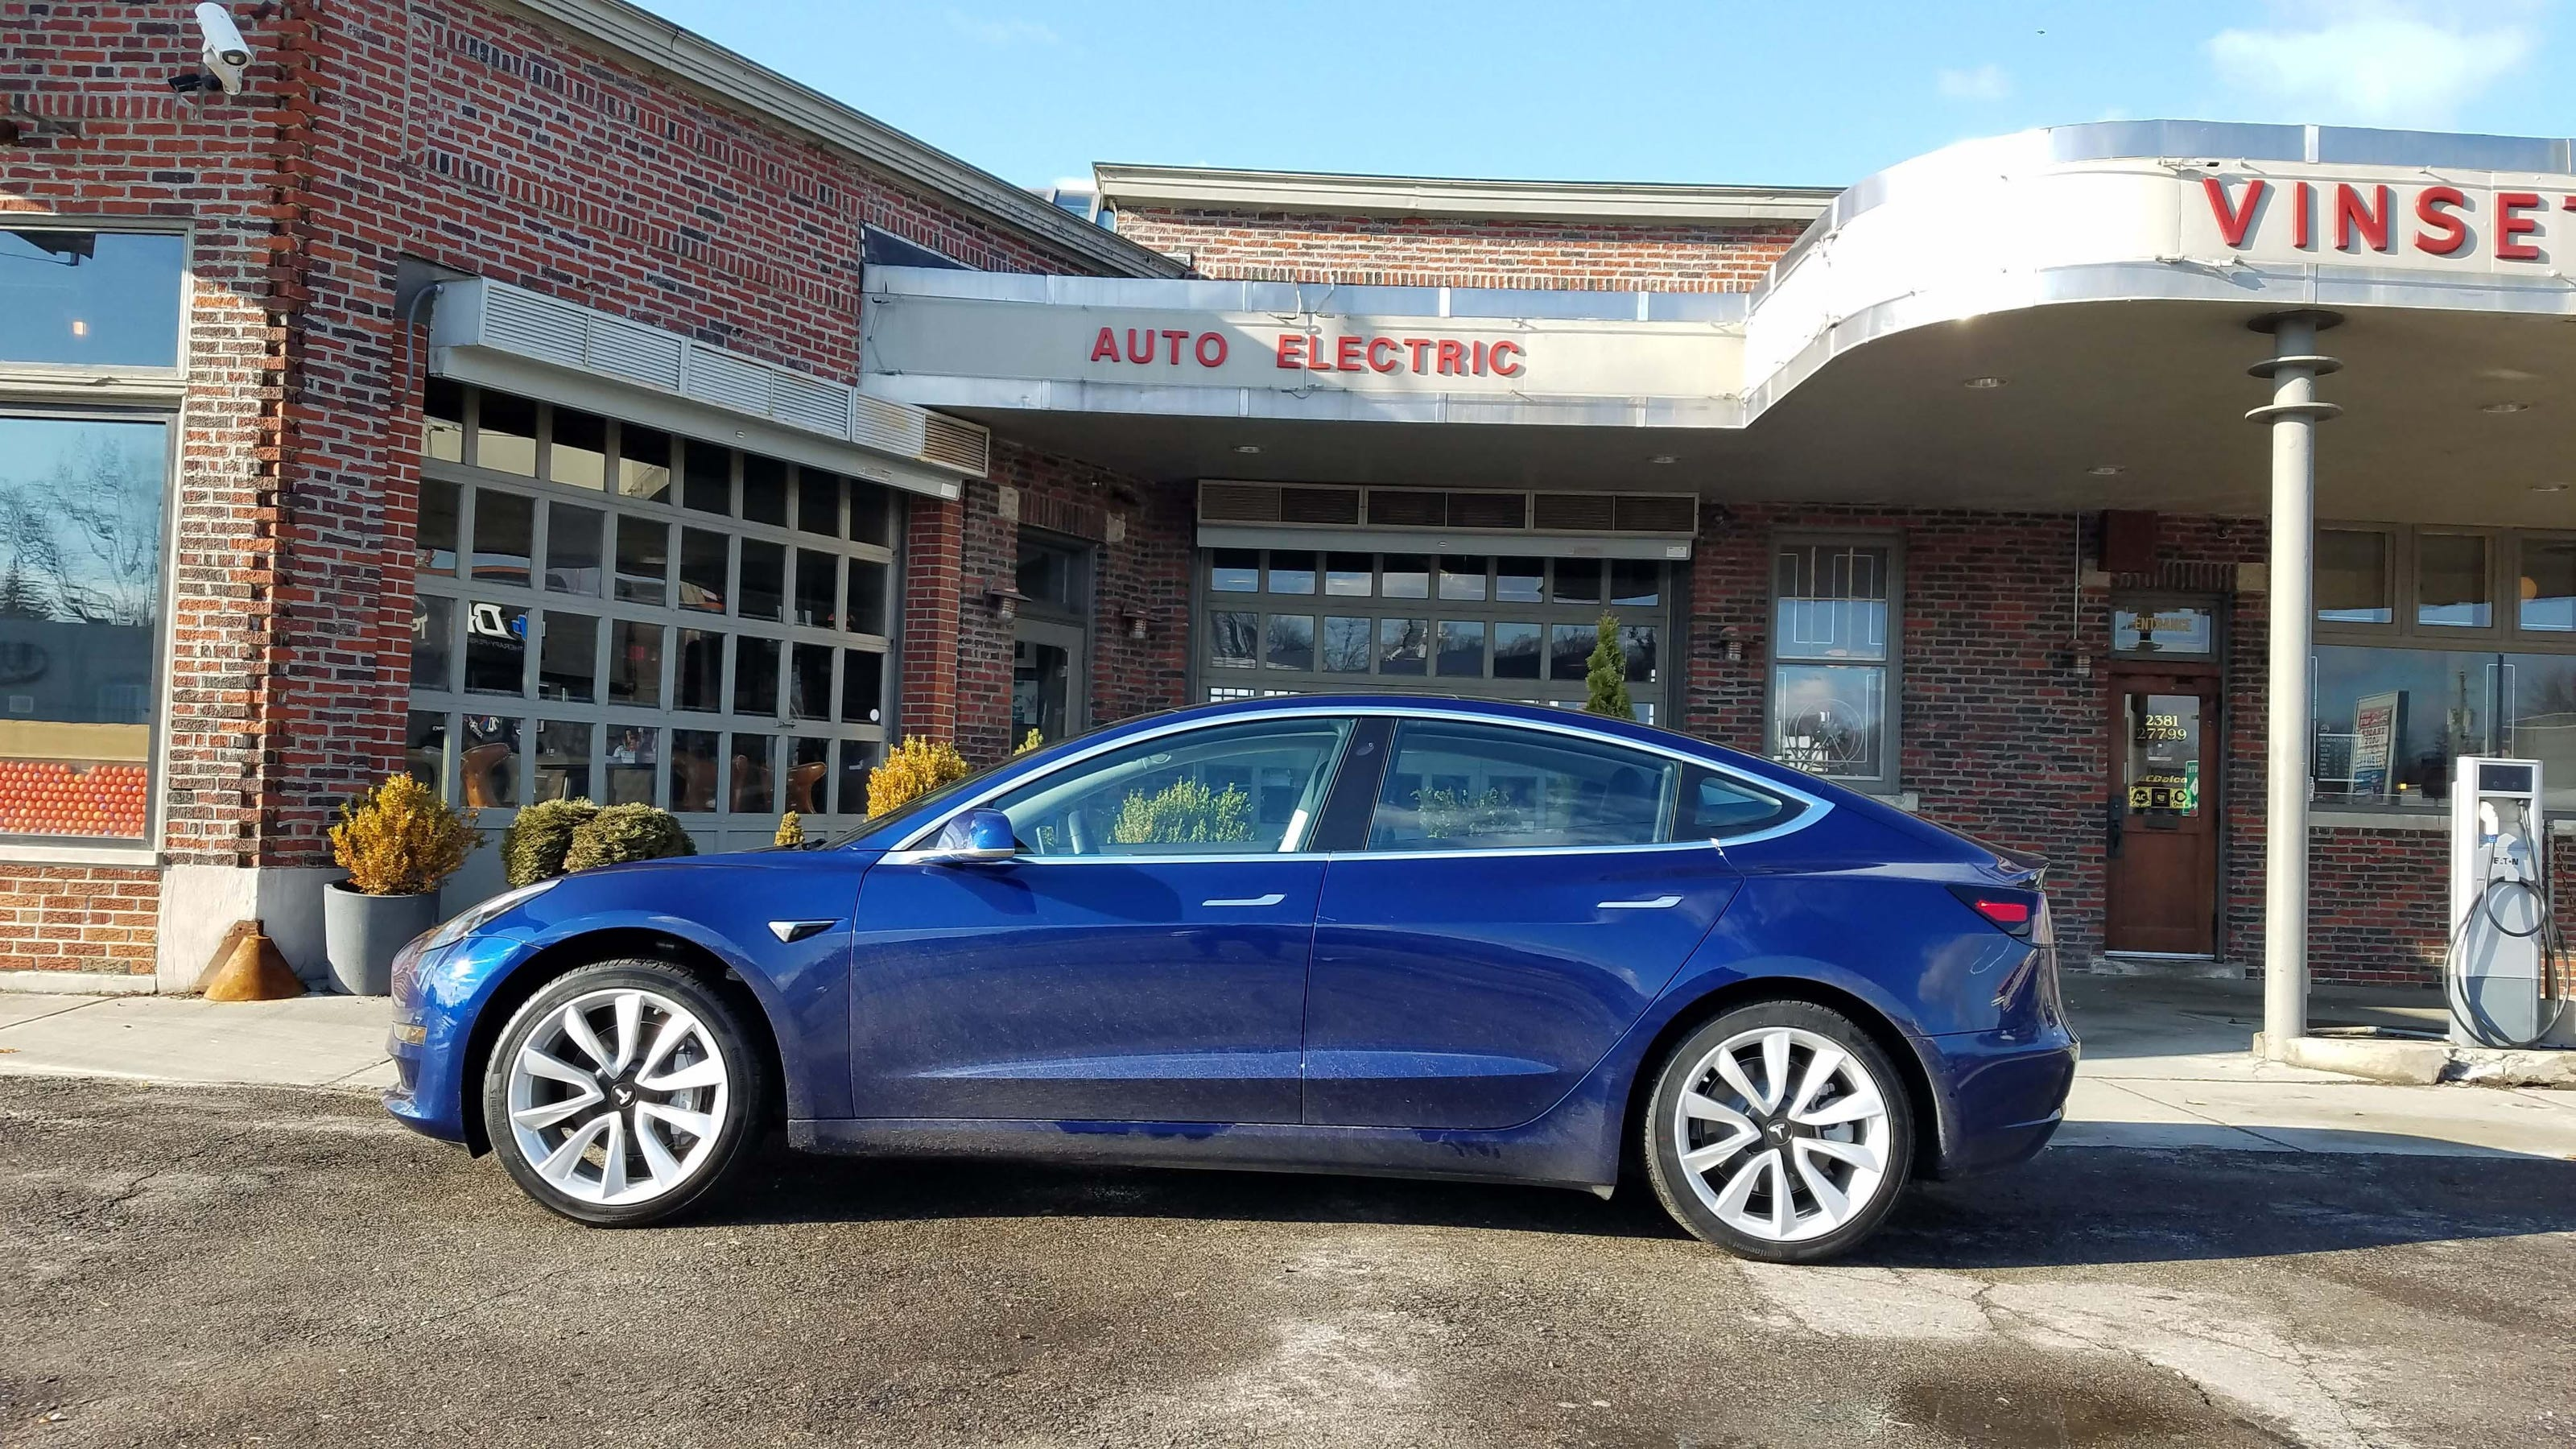 Review: Tesla Model 3 lives up to hype